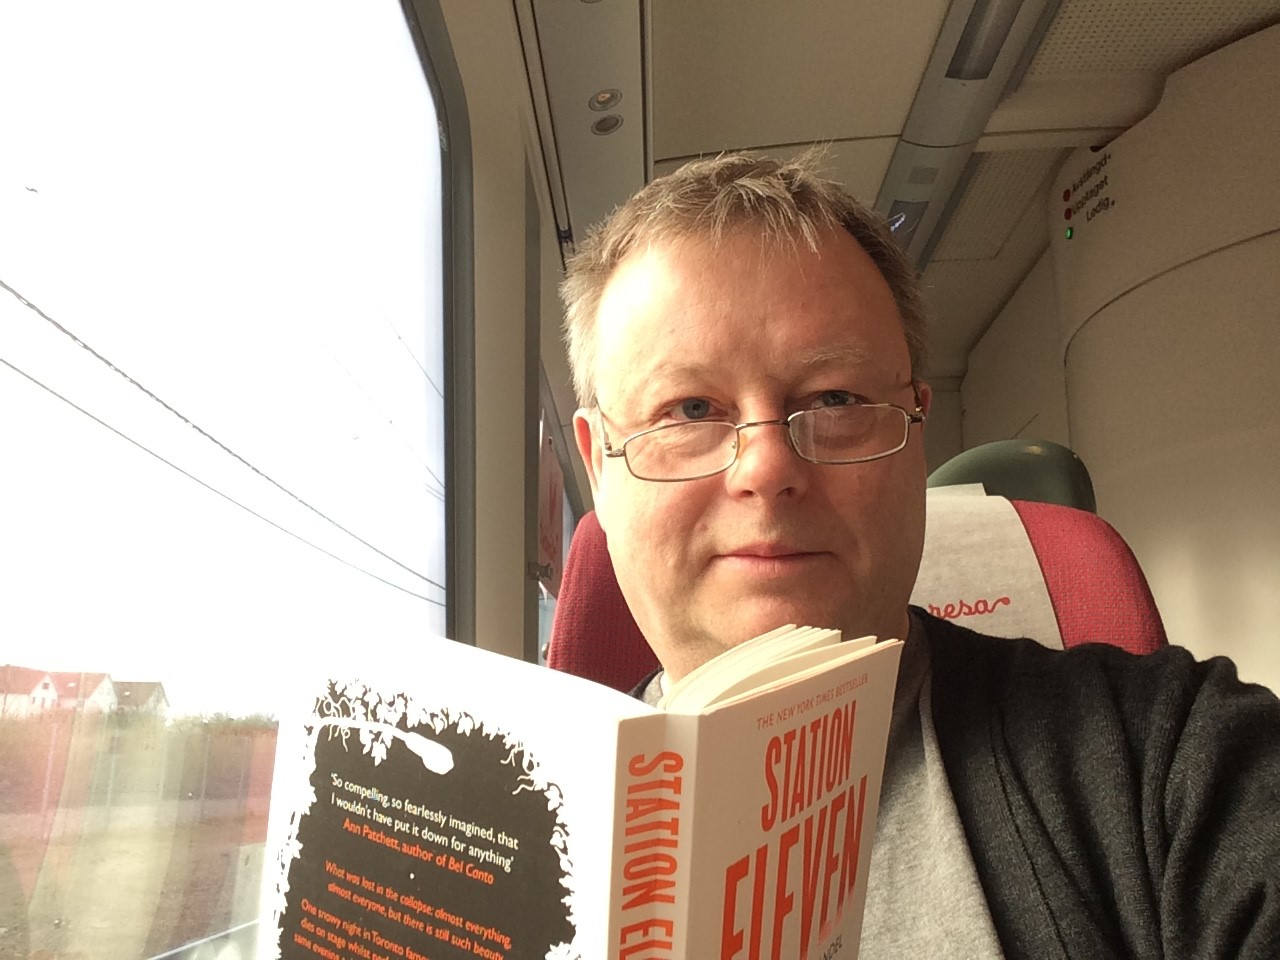 Jan reading on the train